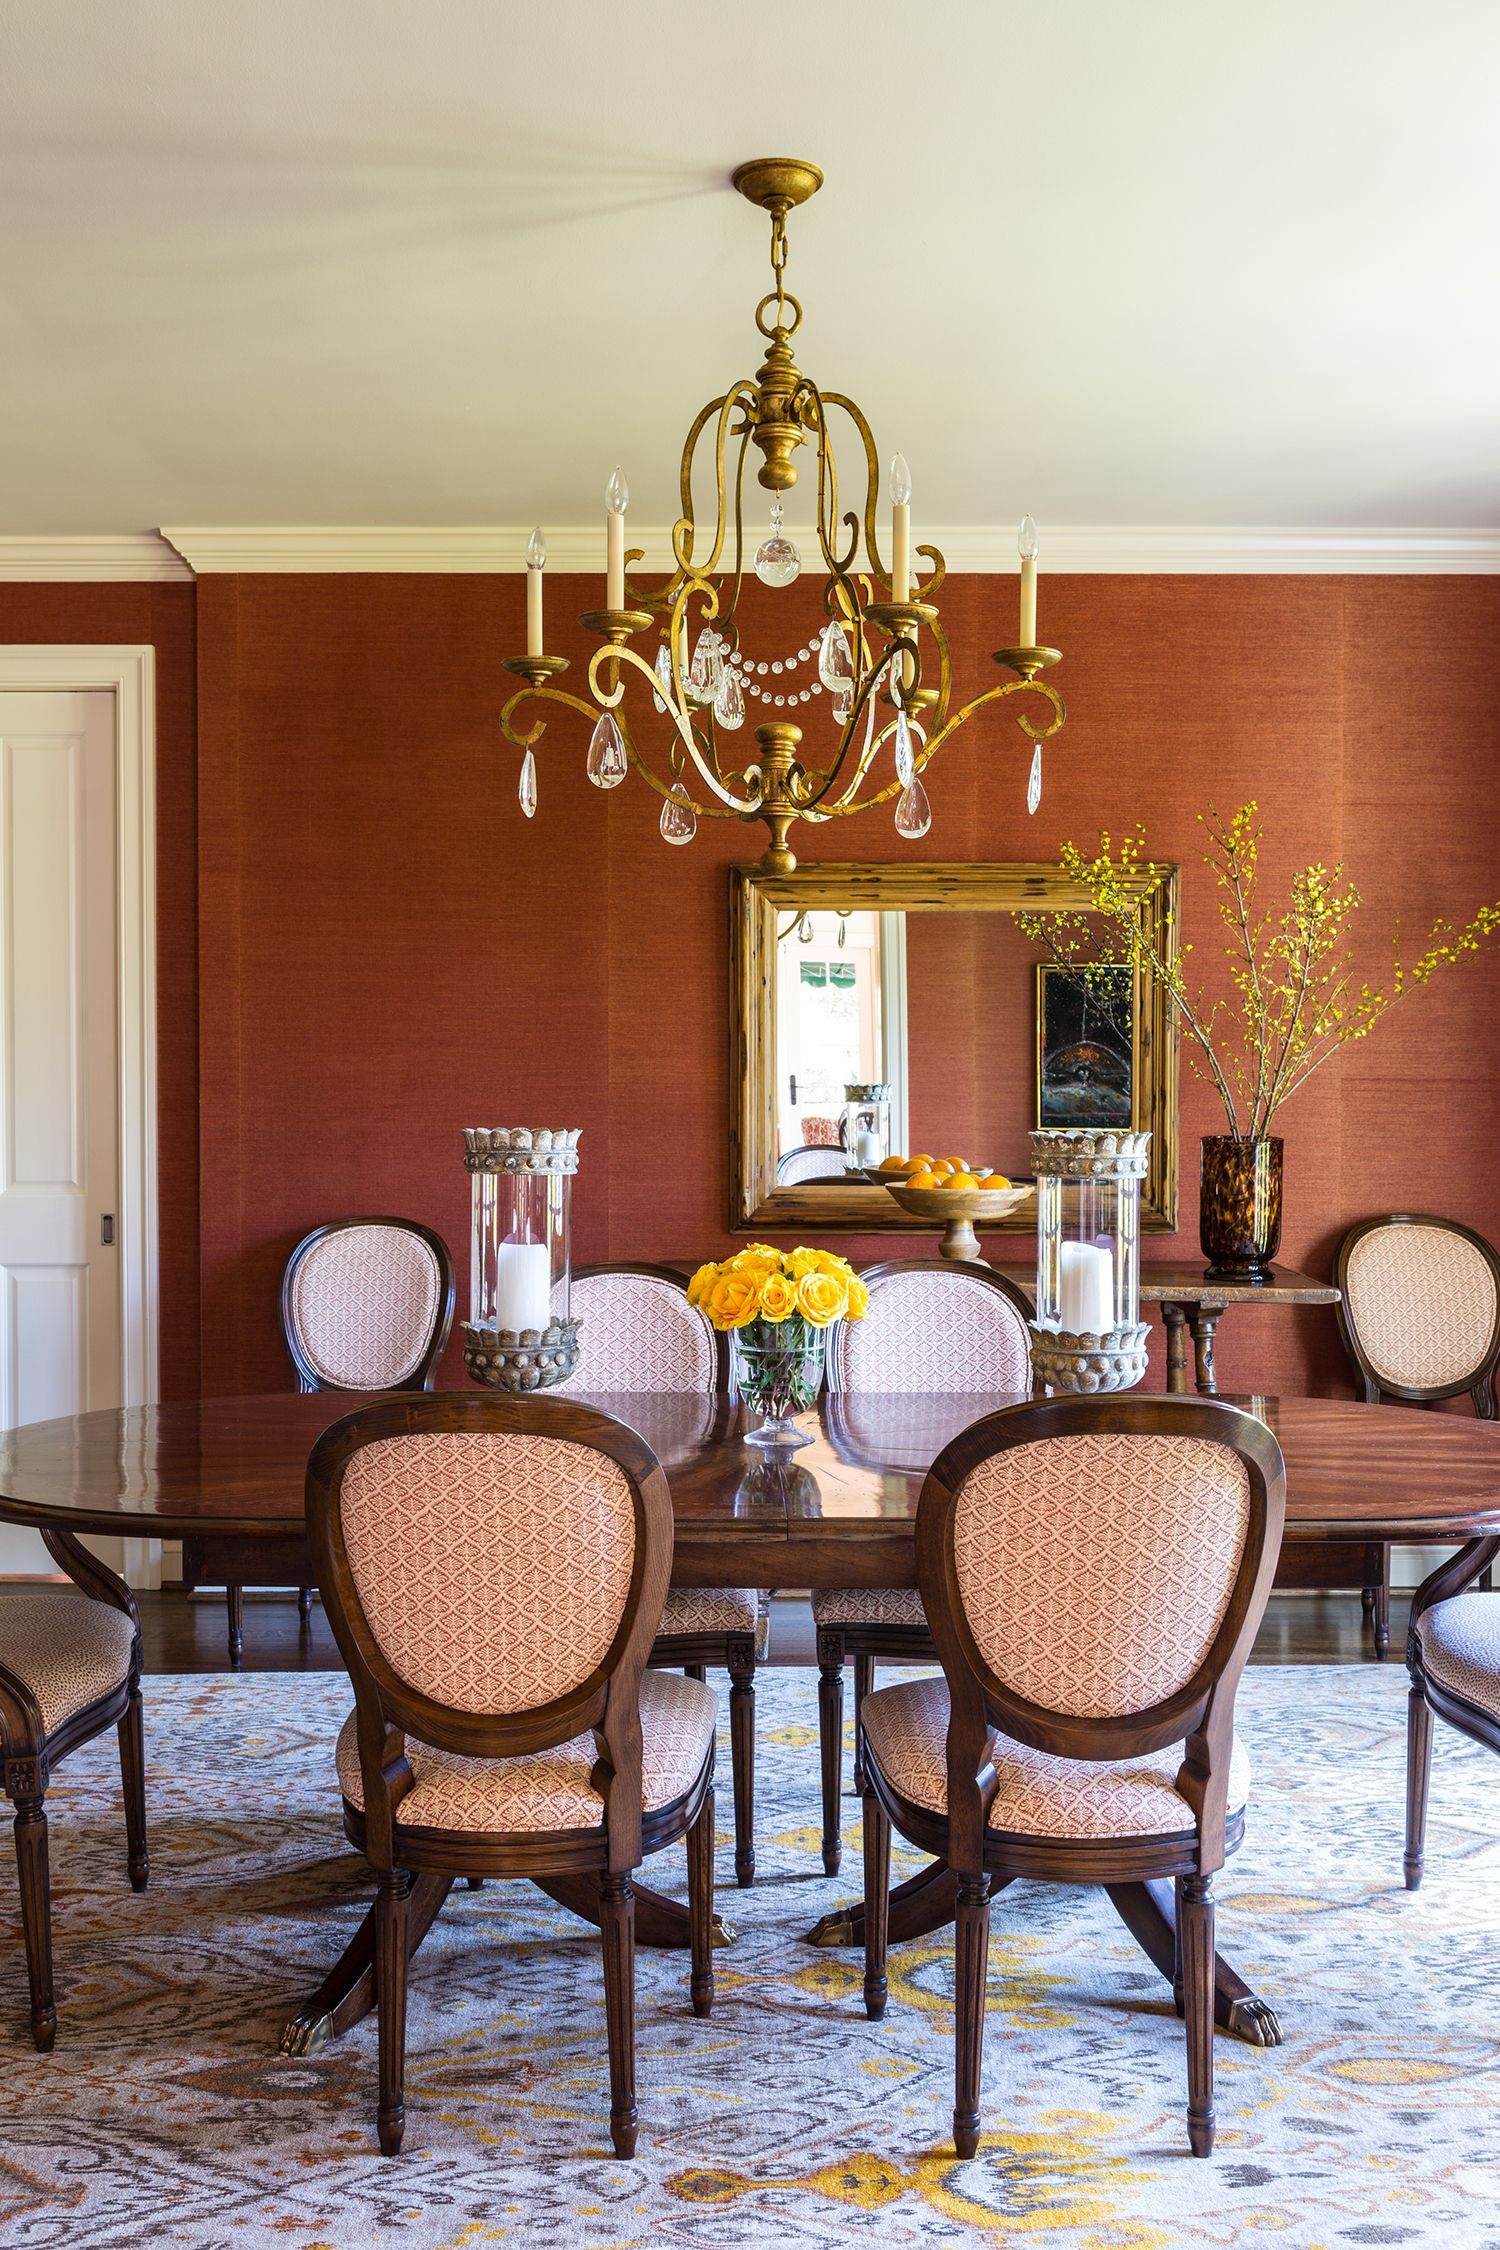 The Design Trends That Are In And Out In 2020 What Decorating Styles Are In Out